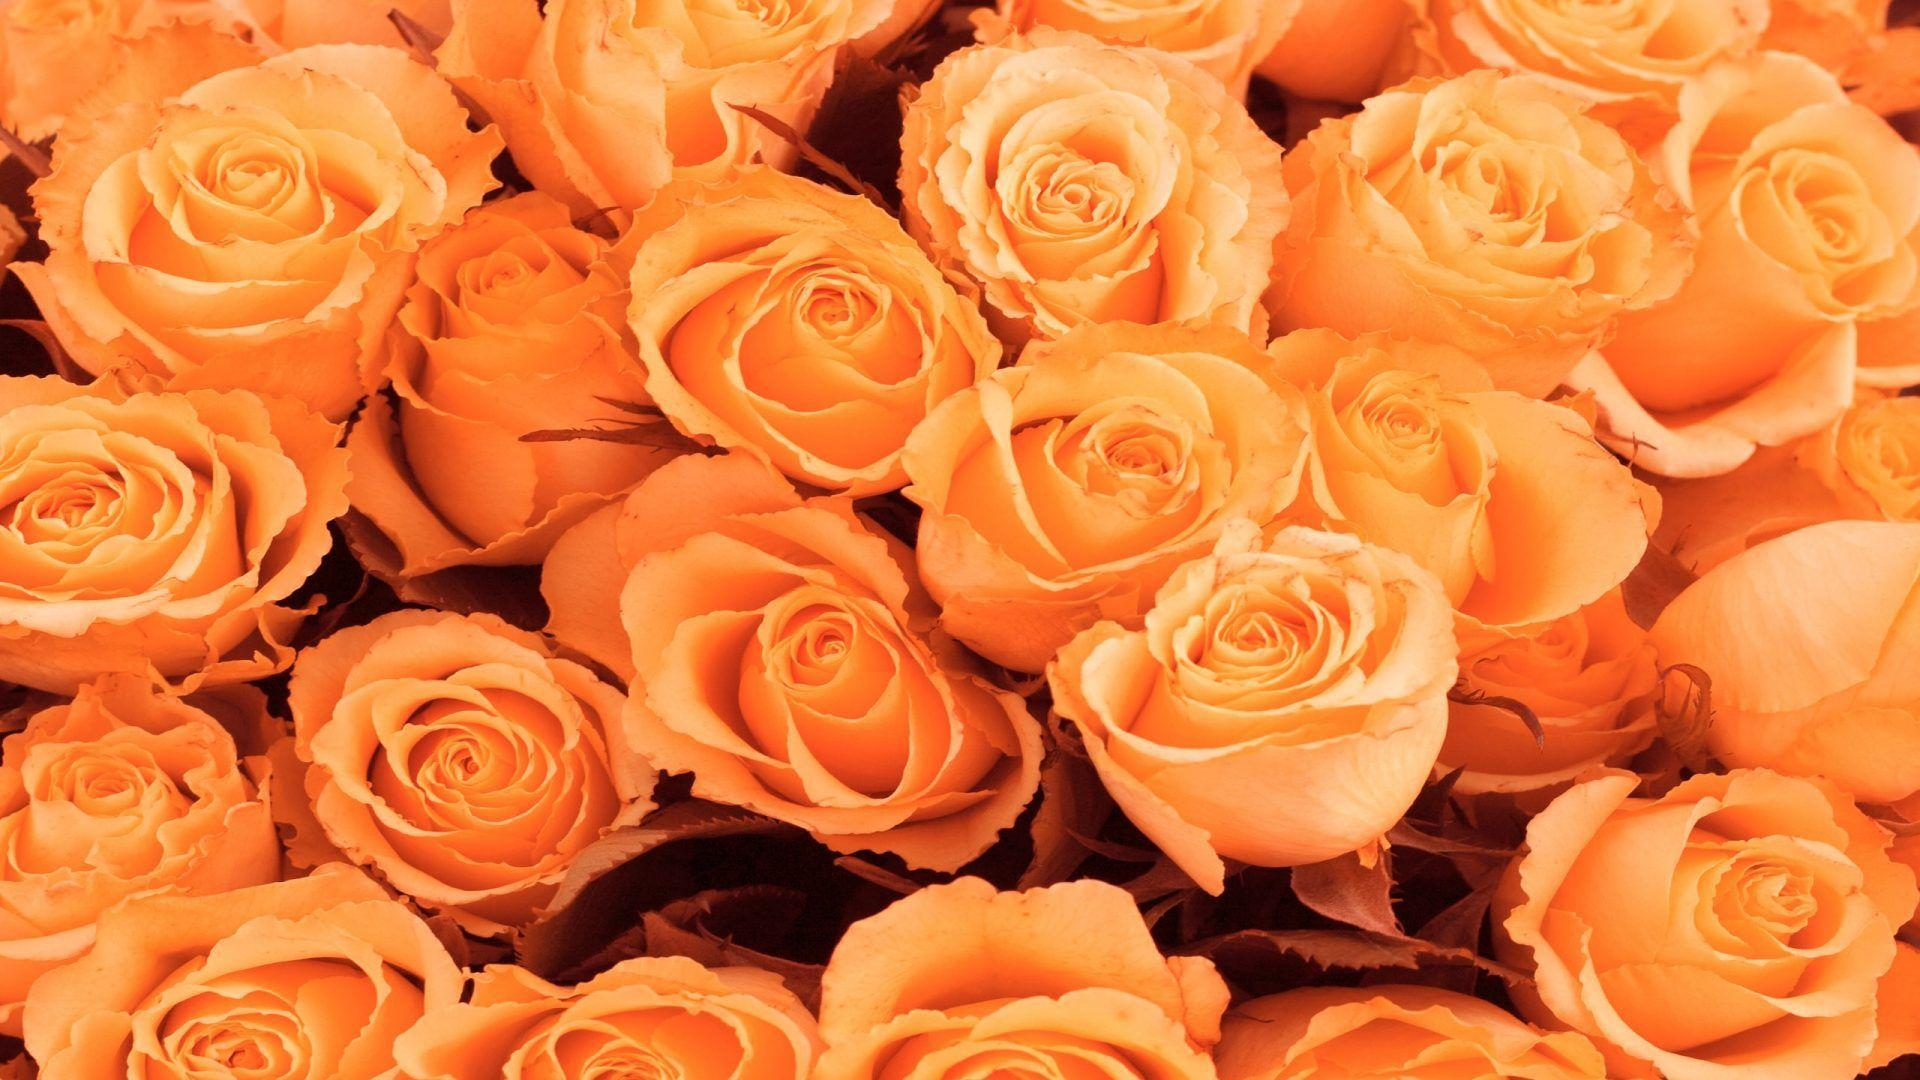 Wallpaper Orange Peach Rose Pretty Picturesboss